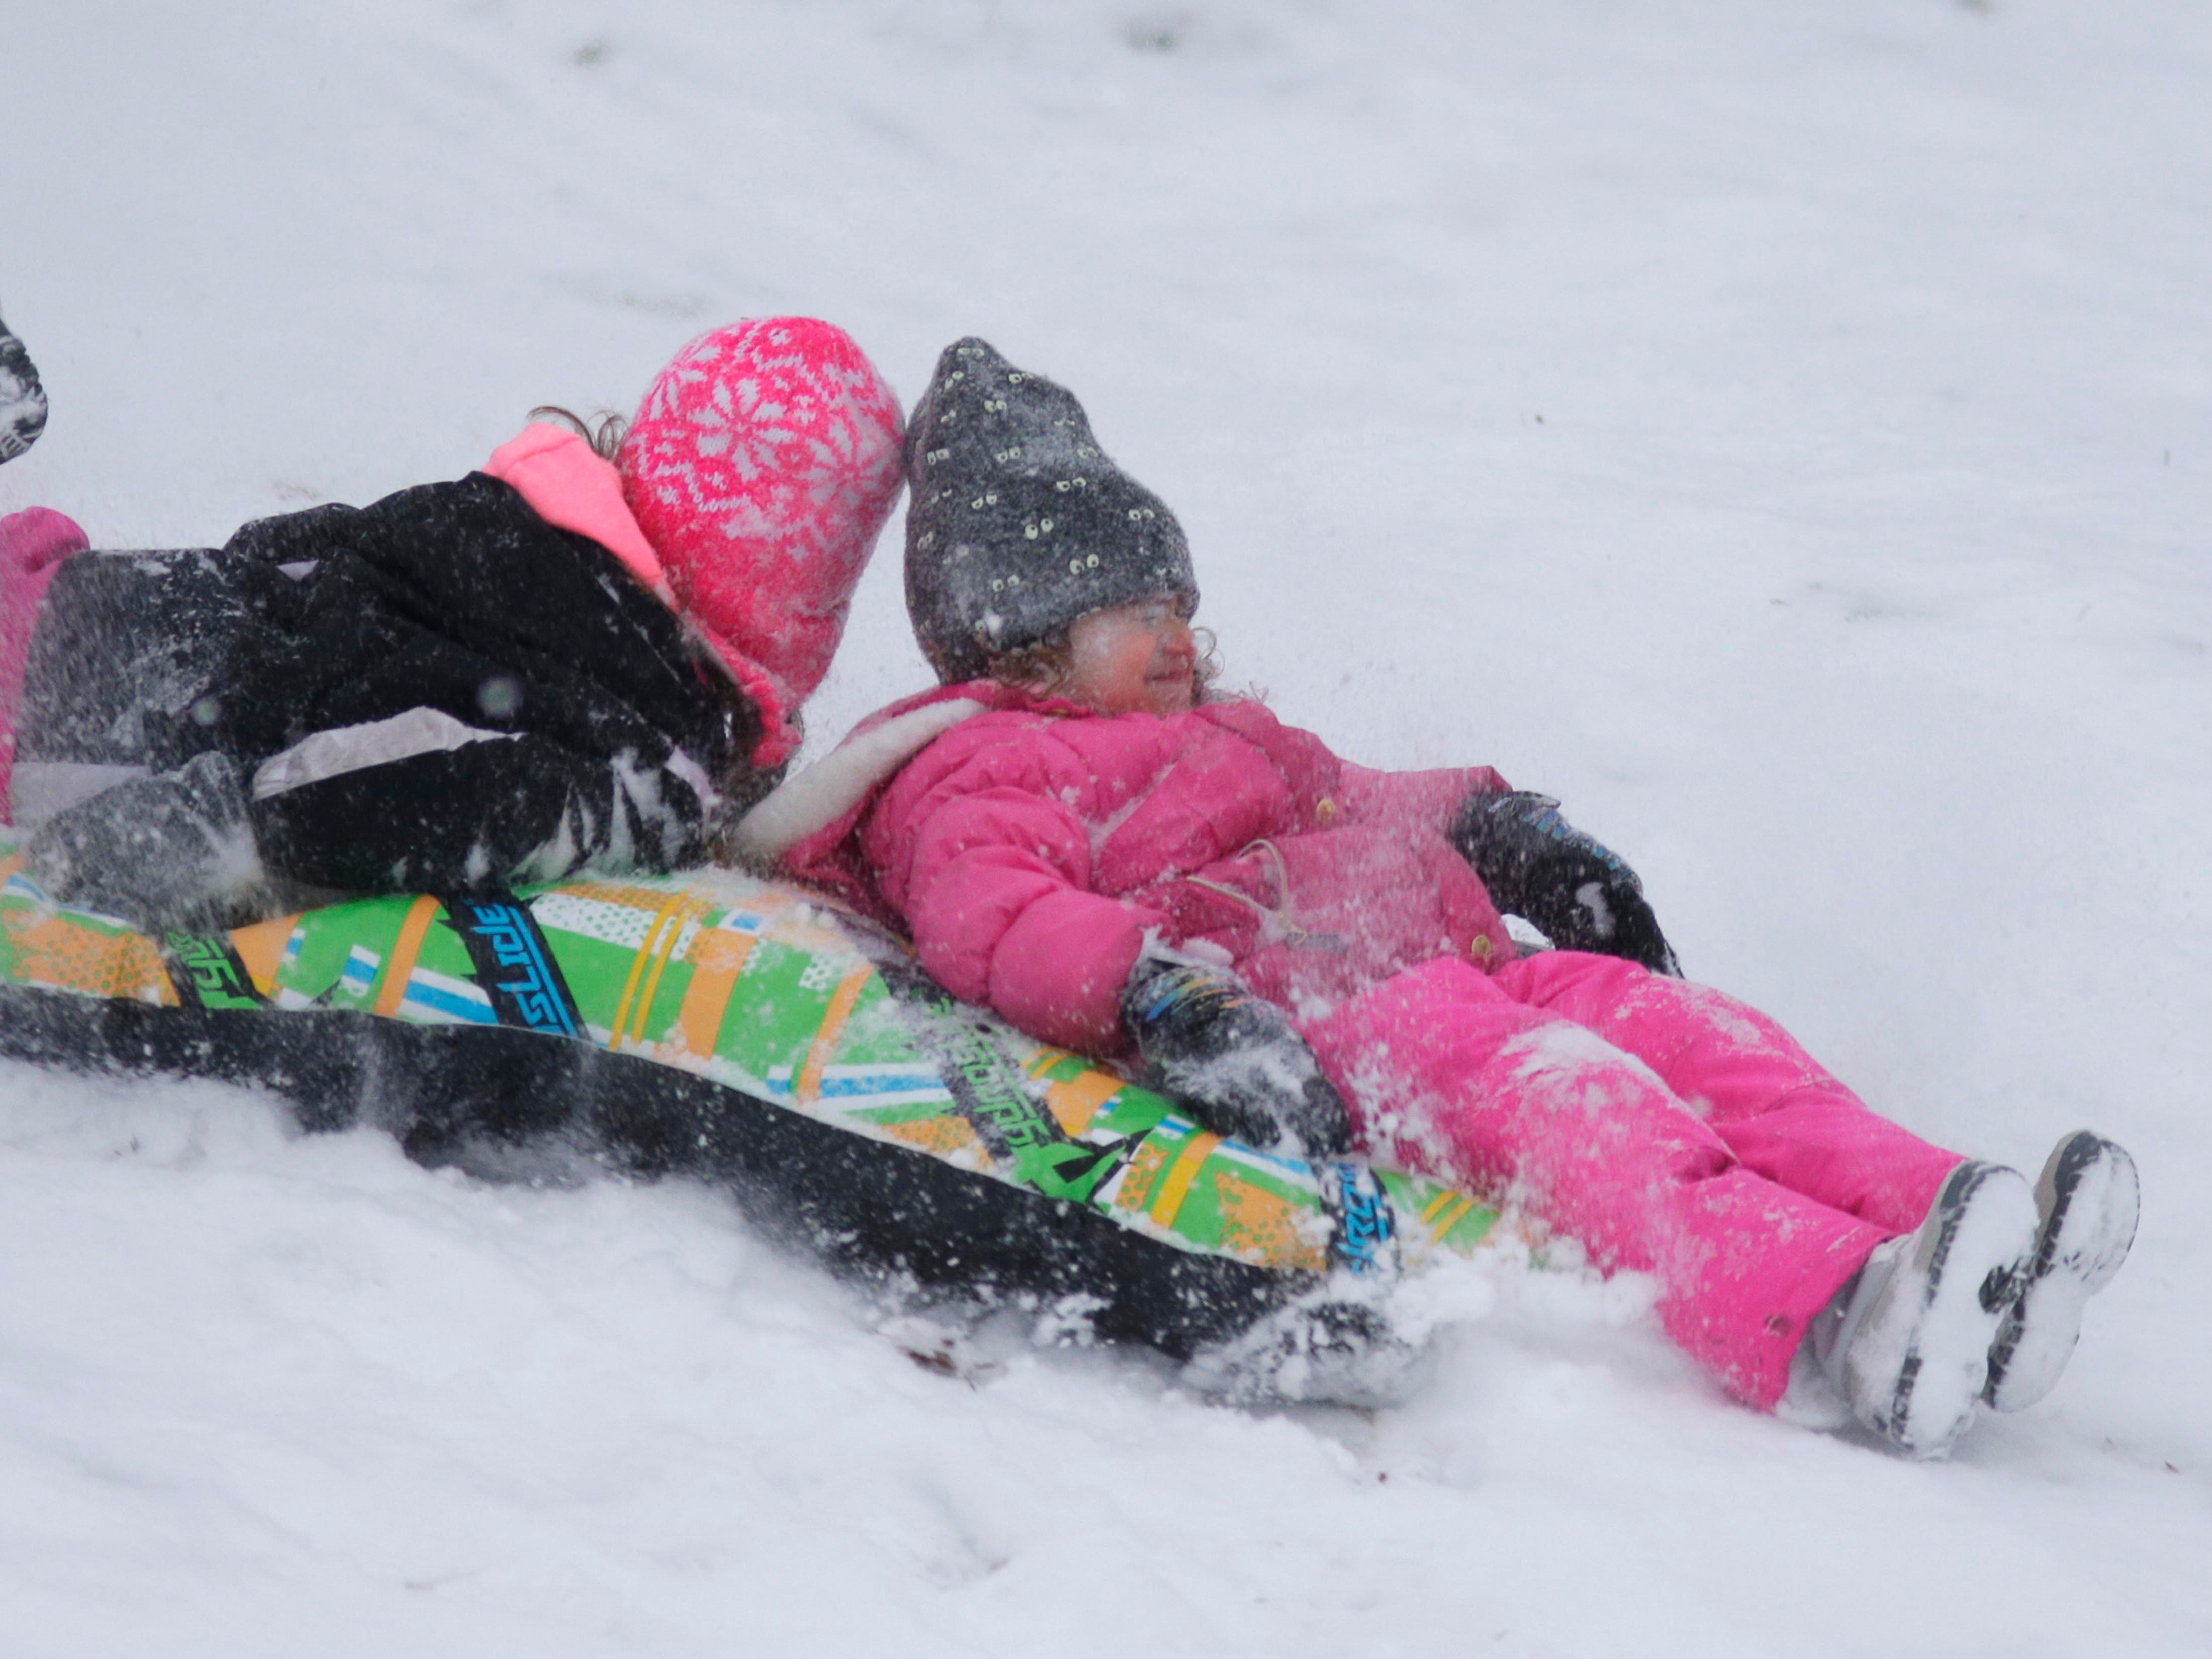 Zayna Kleppin, 7, left, and her sister Sabrina, 4, sled down the hill at Vollrath Bowl, Wednesday, January 2, 2019, in Sheboygan, Wis.